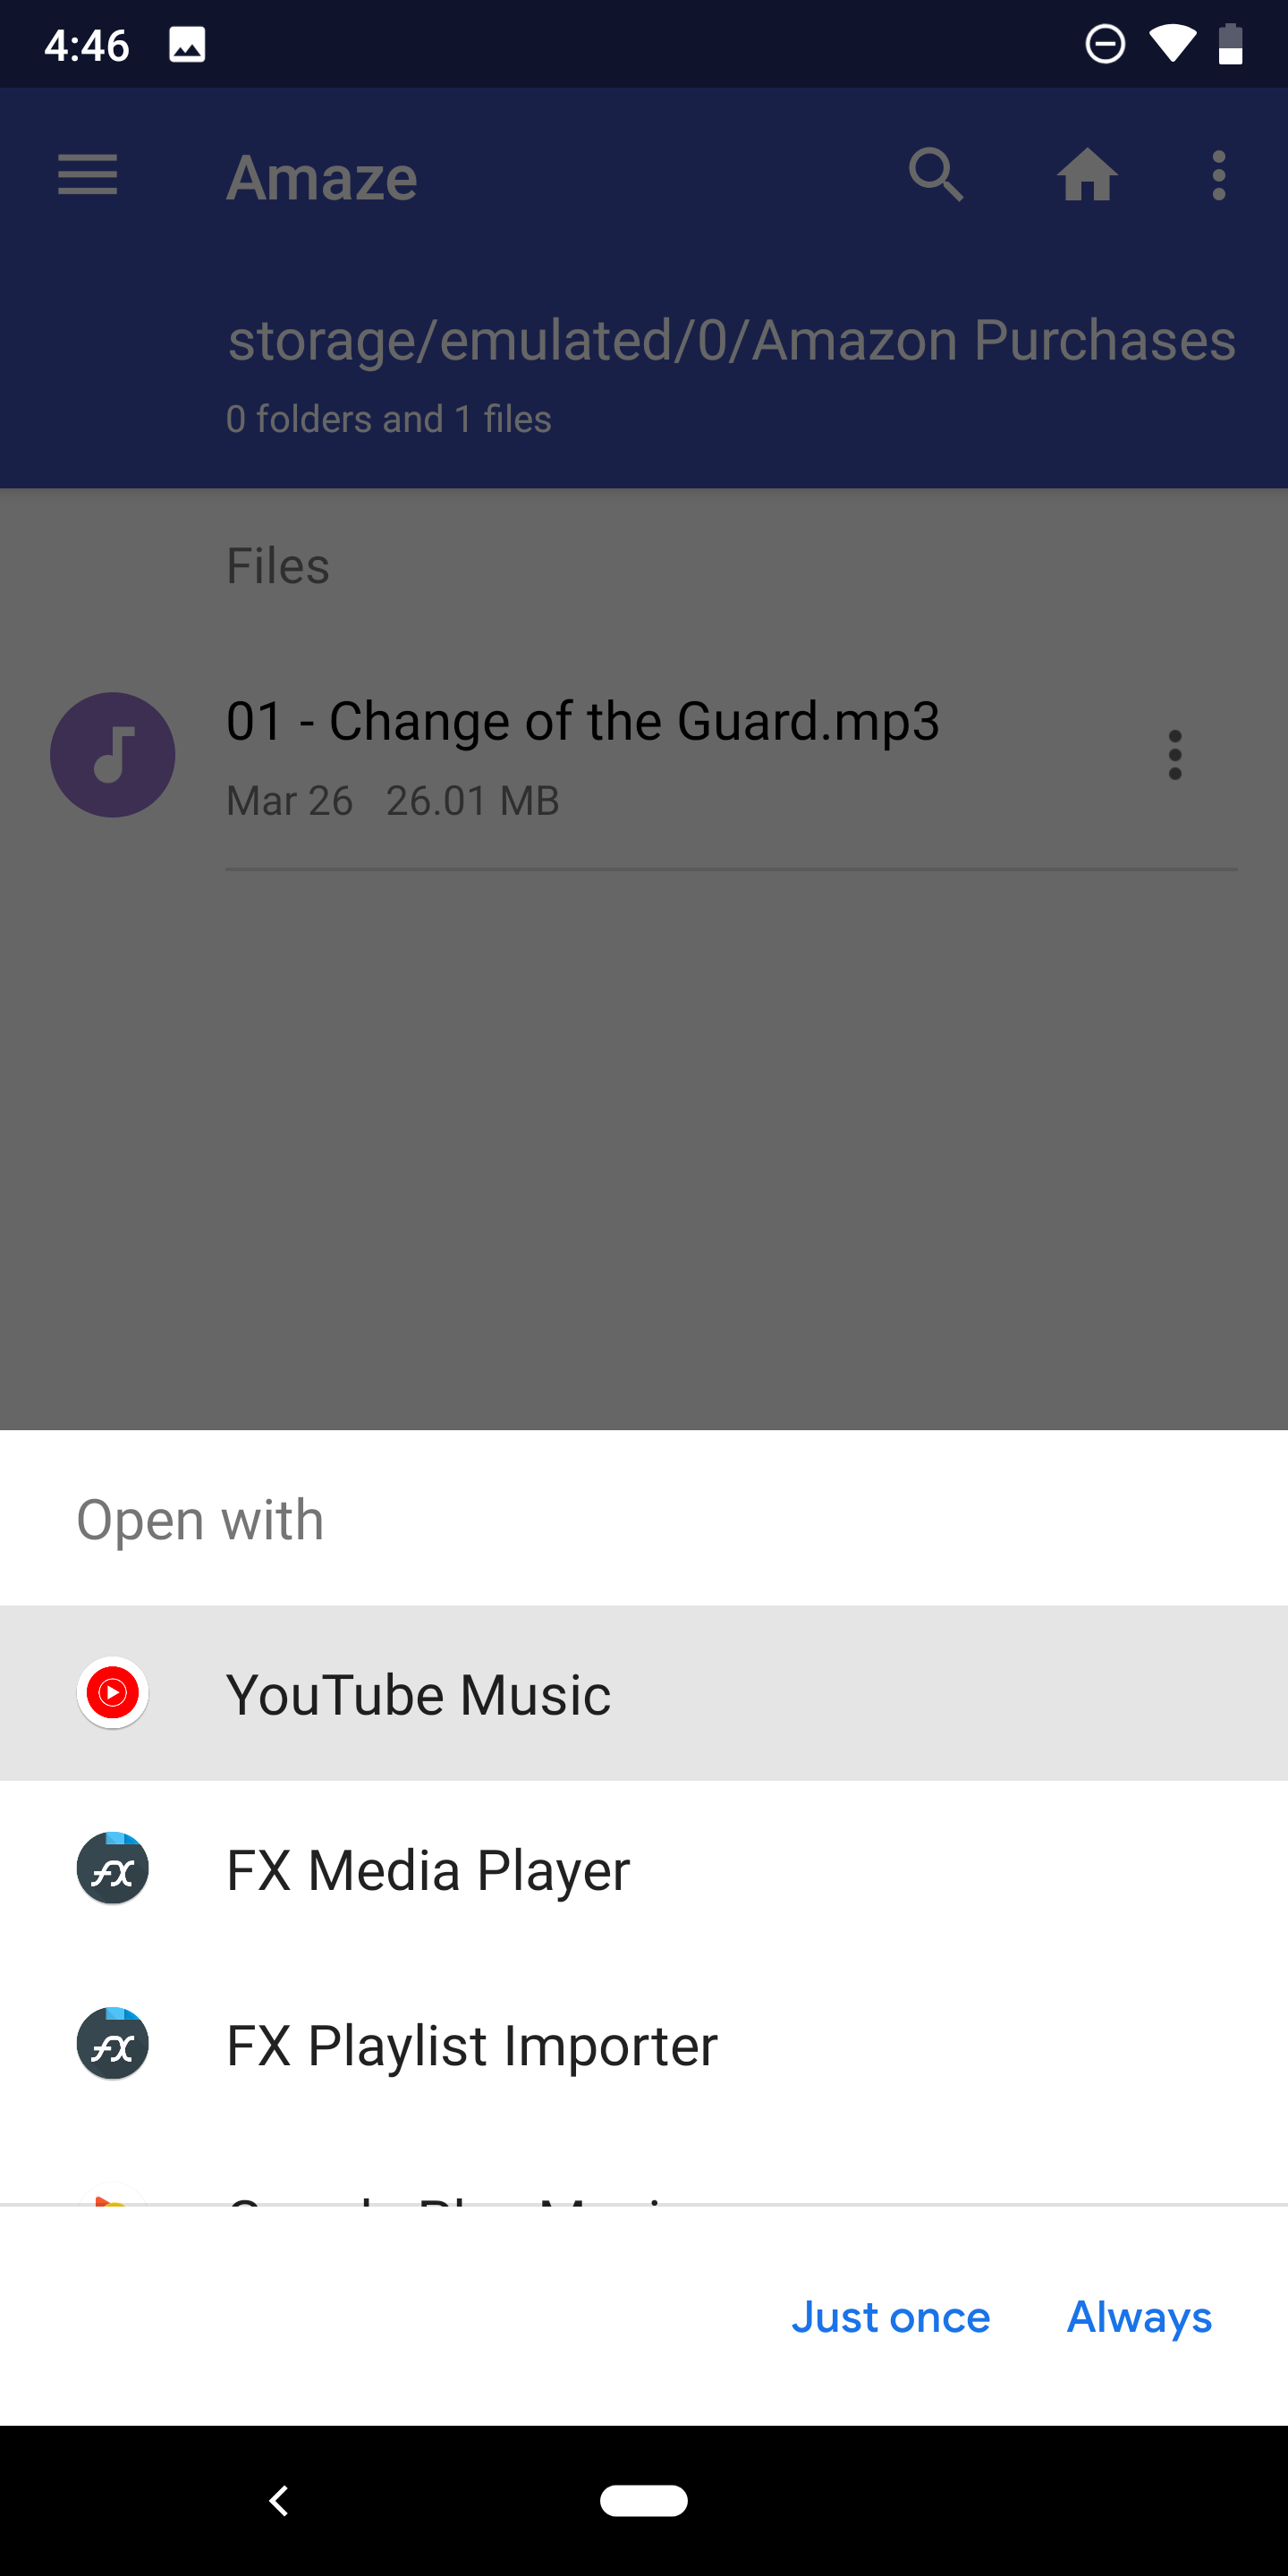 YouTube Music can now act as a media player for files stored on your